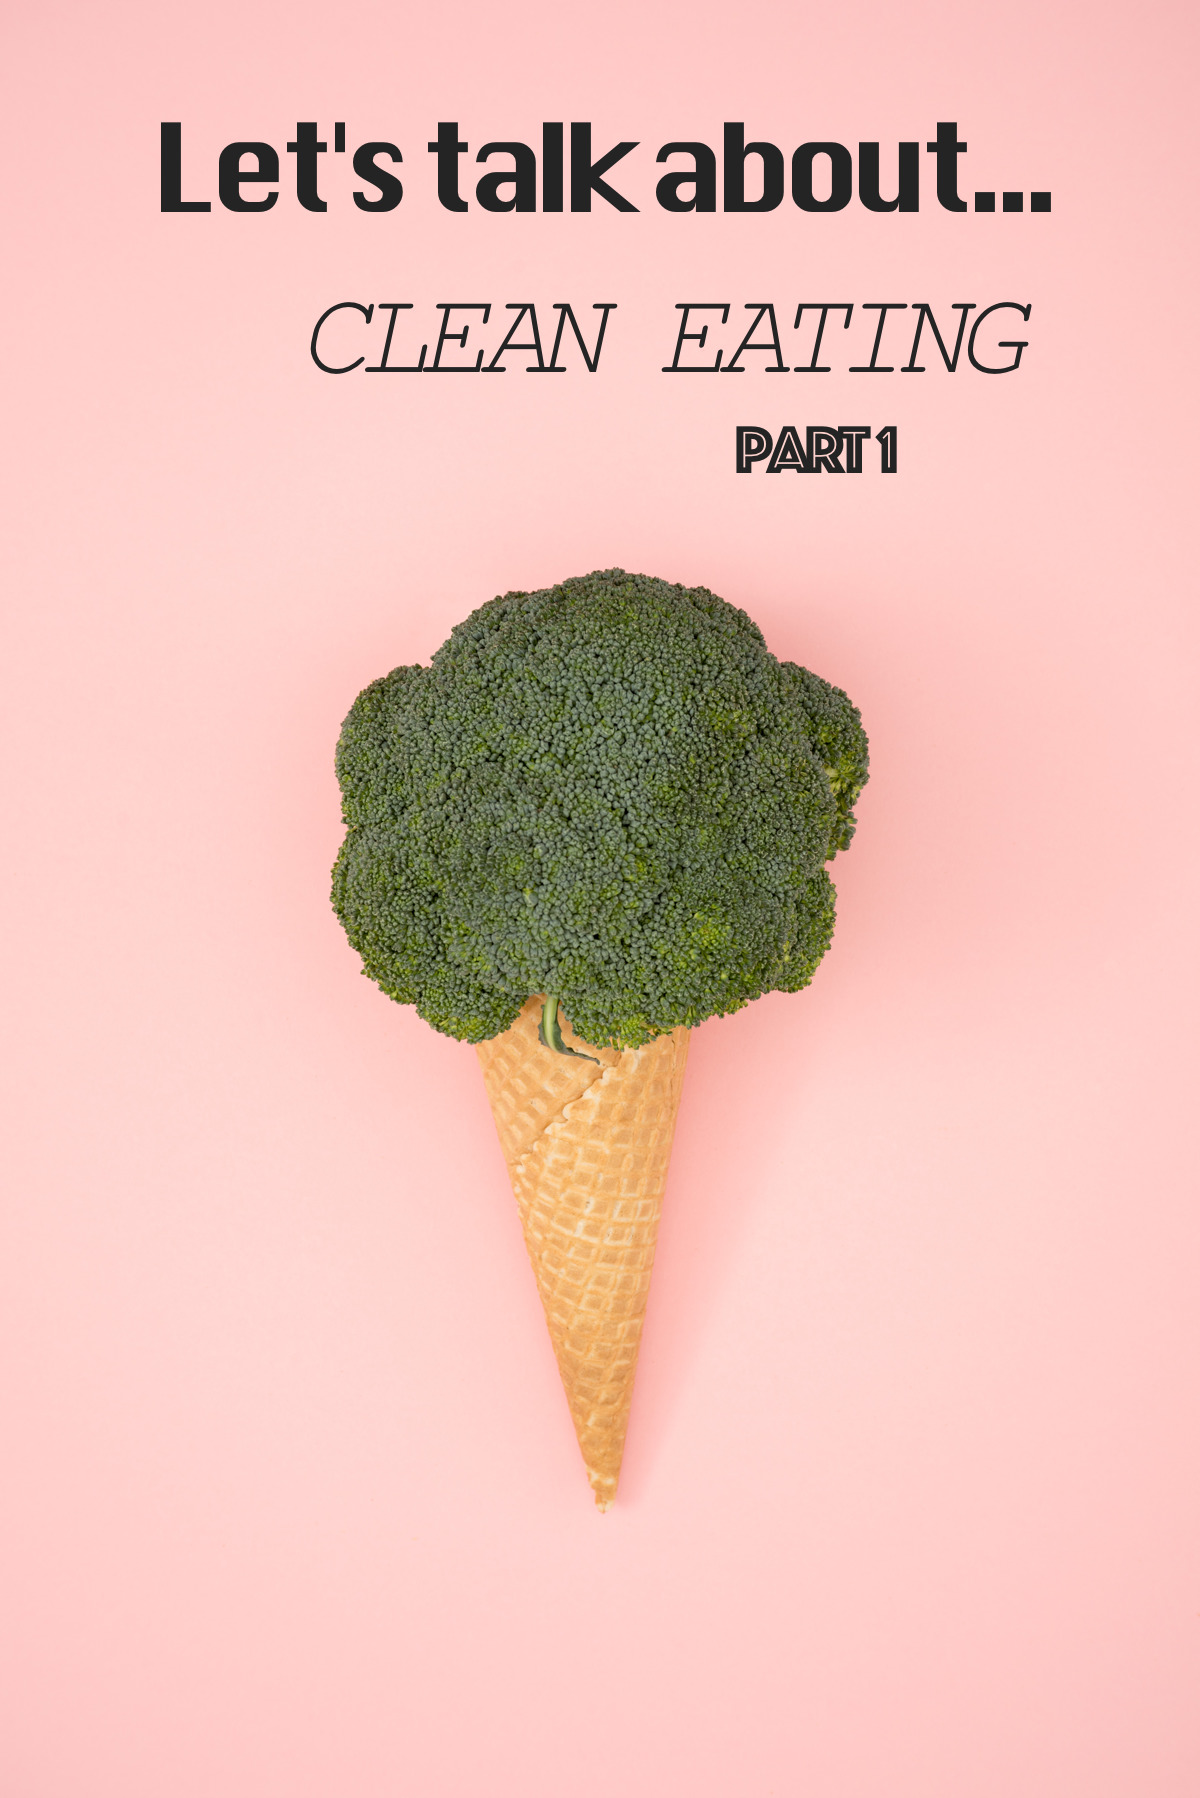 Let's talk about CLEAN EATING Part 1